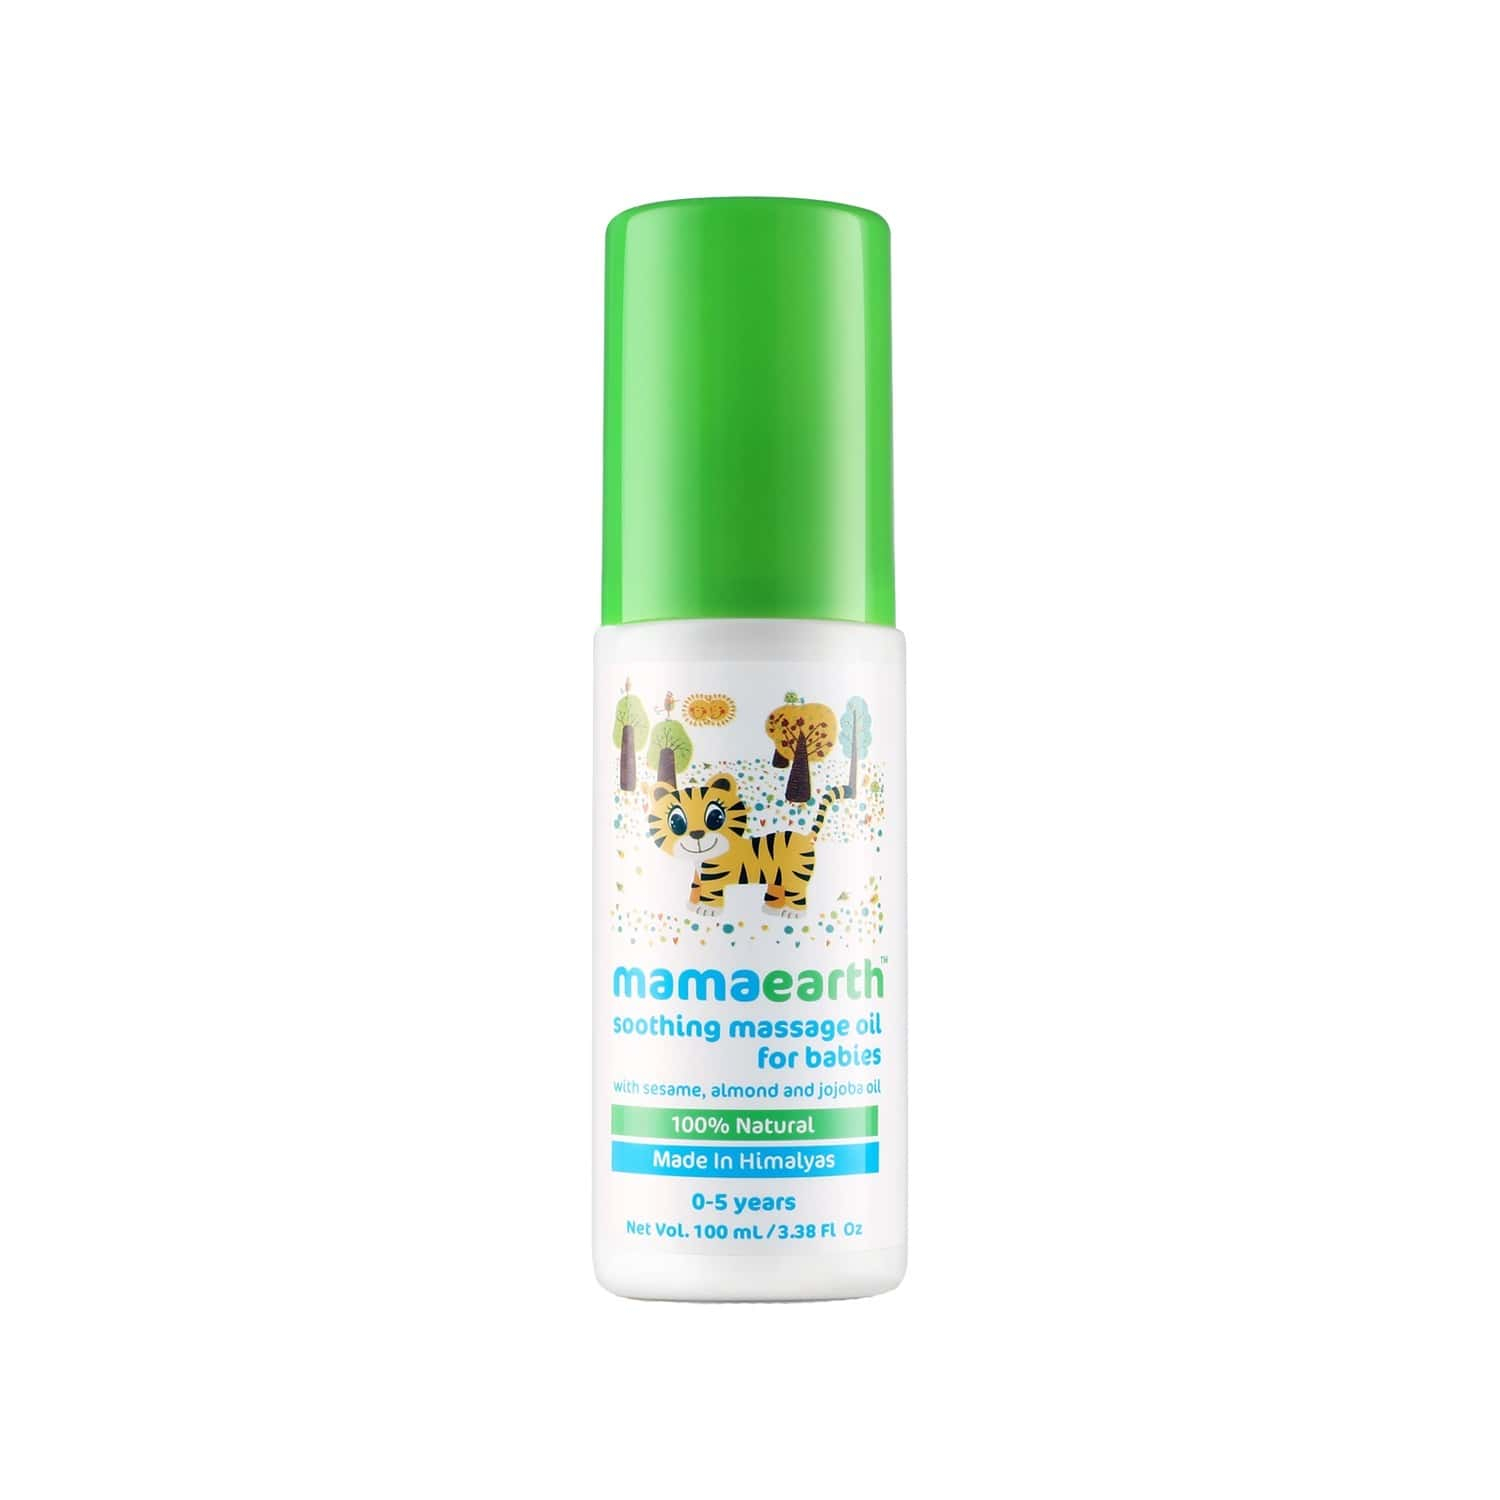 Mamaearth Soothing Massage Oil For 0-5 Yrs Babies 100ml